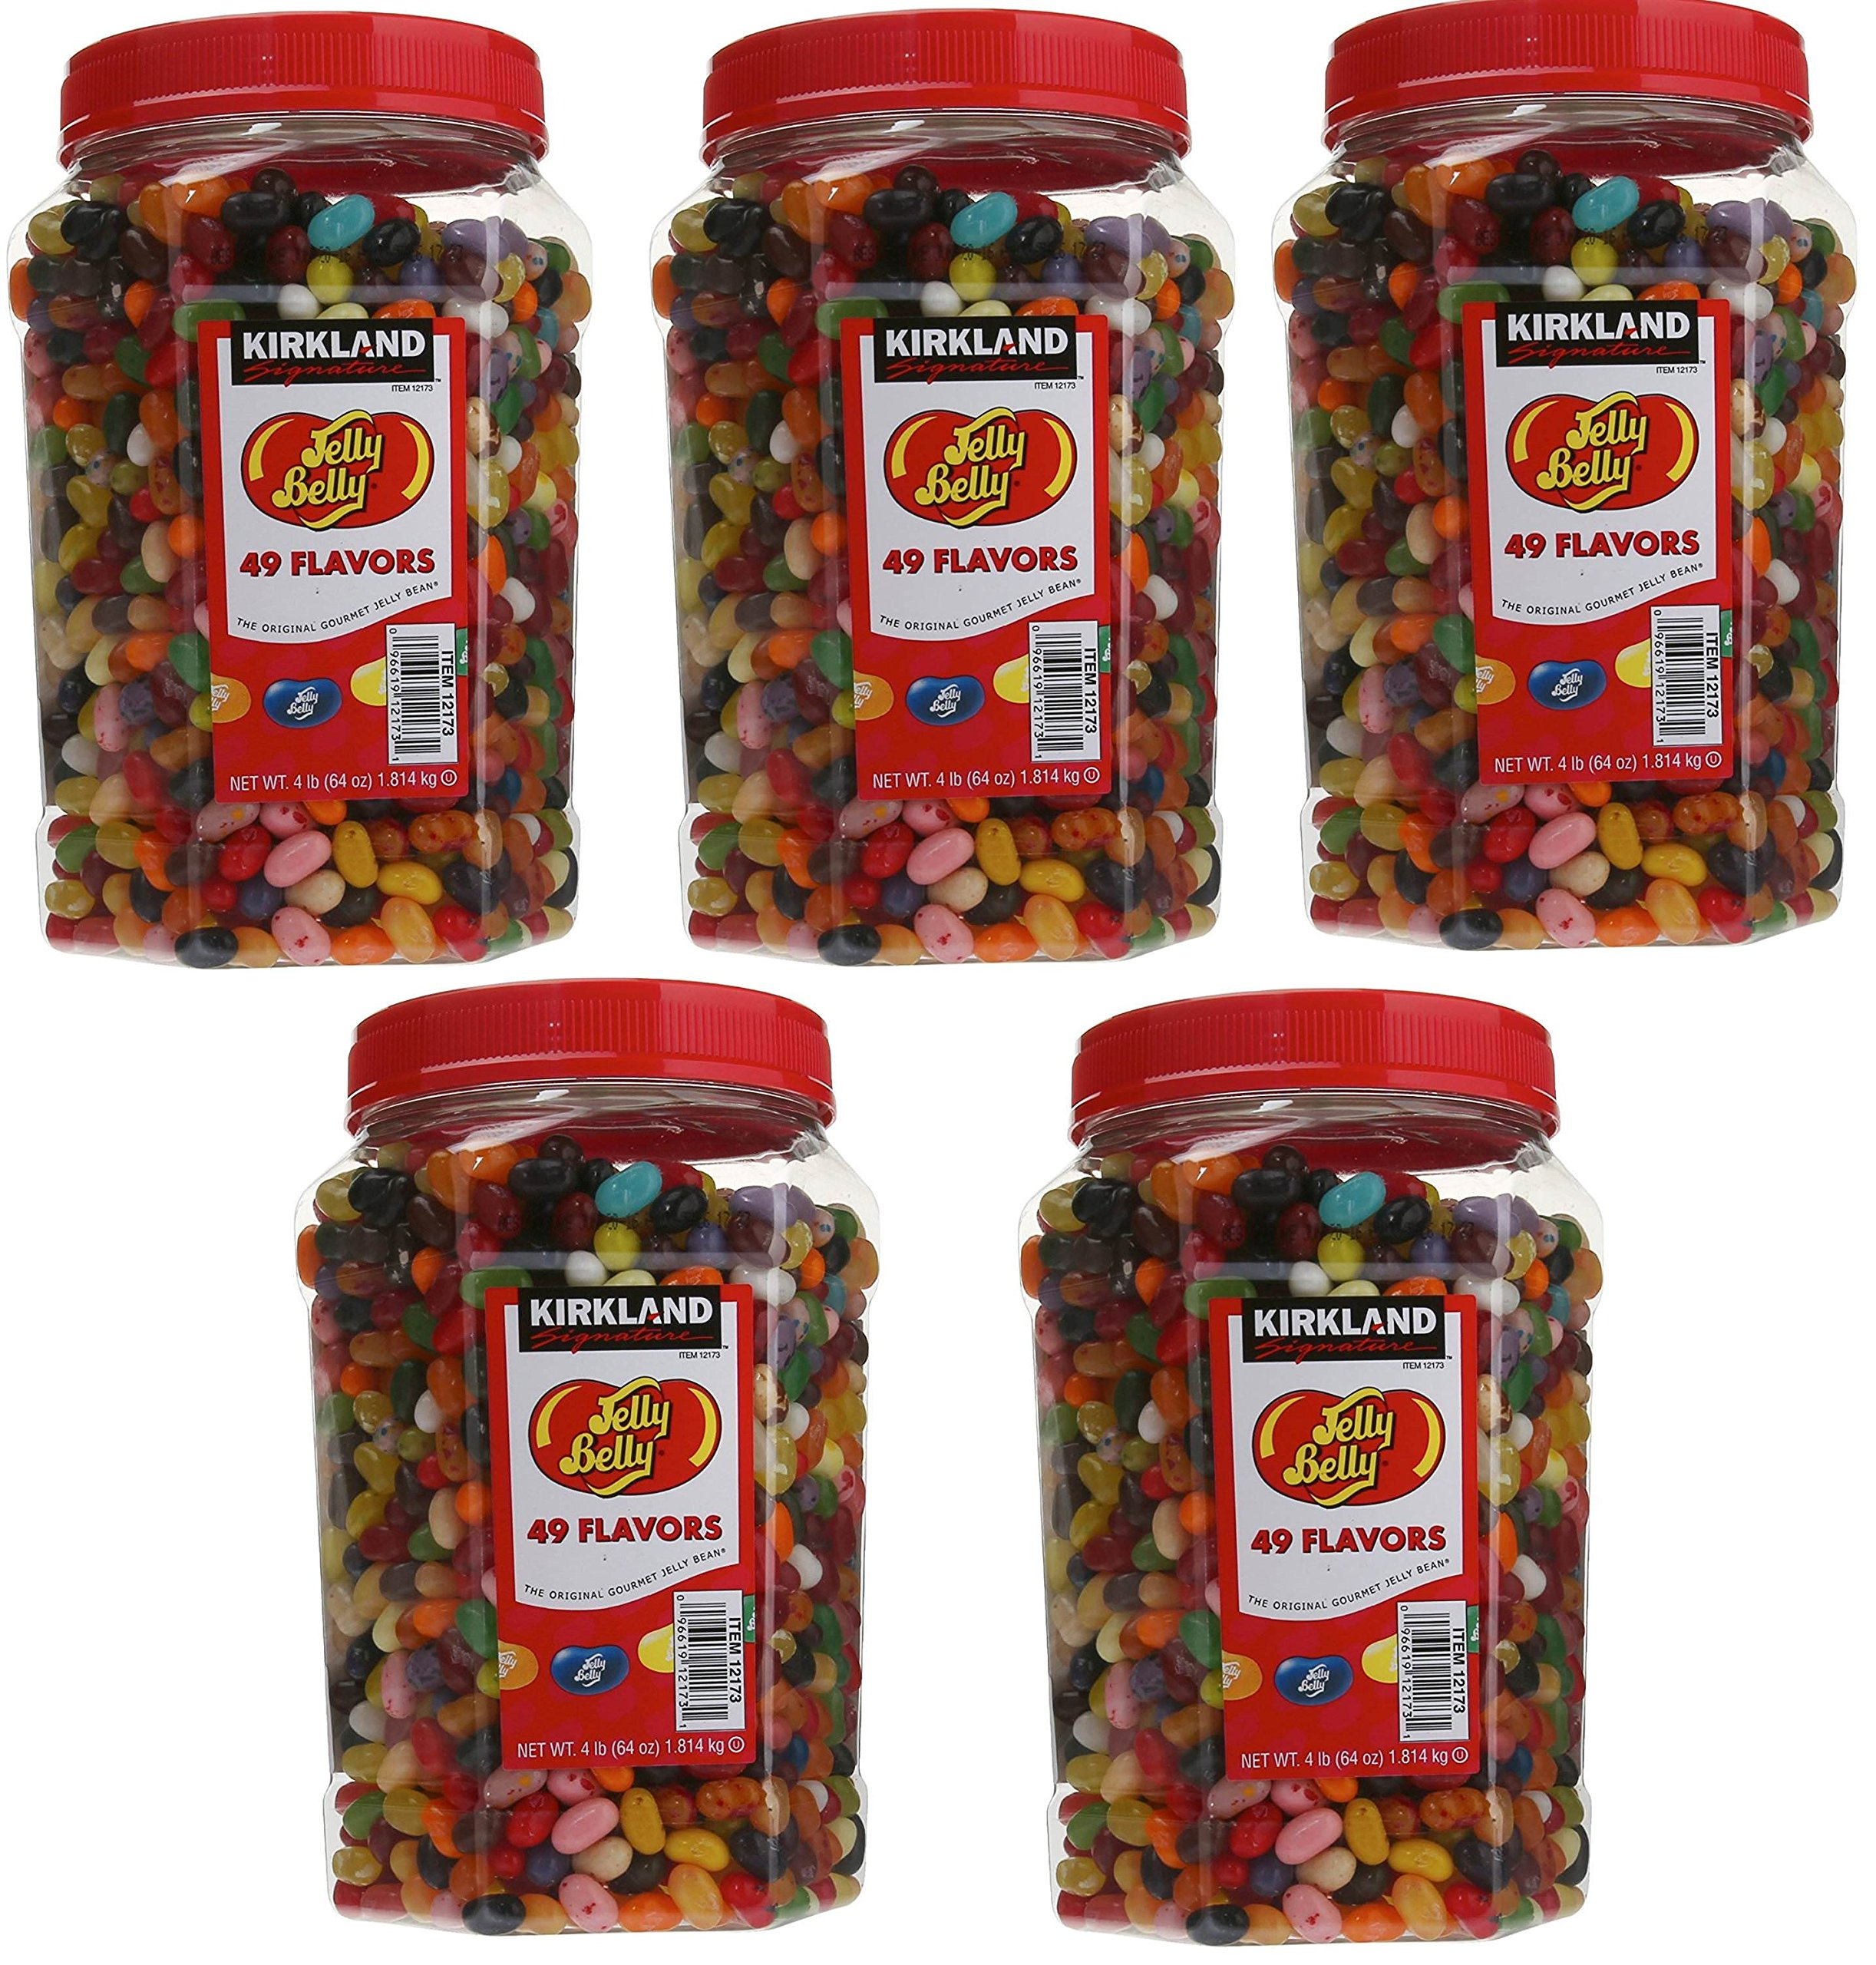 Kirkland Signature Jelly Belly Jelly Beans, 20 Pounds by Kirkland Signature (Image #1)